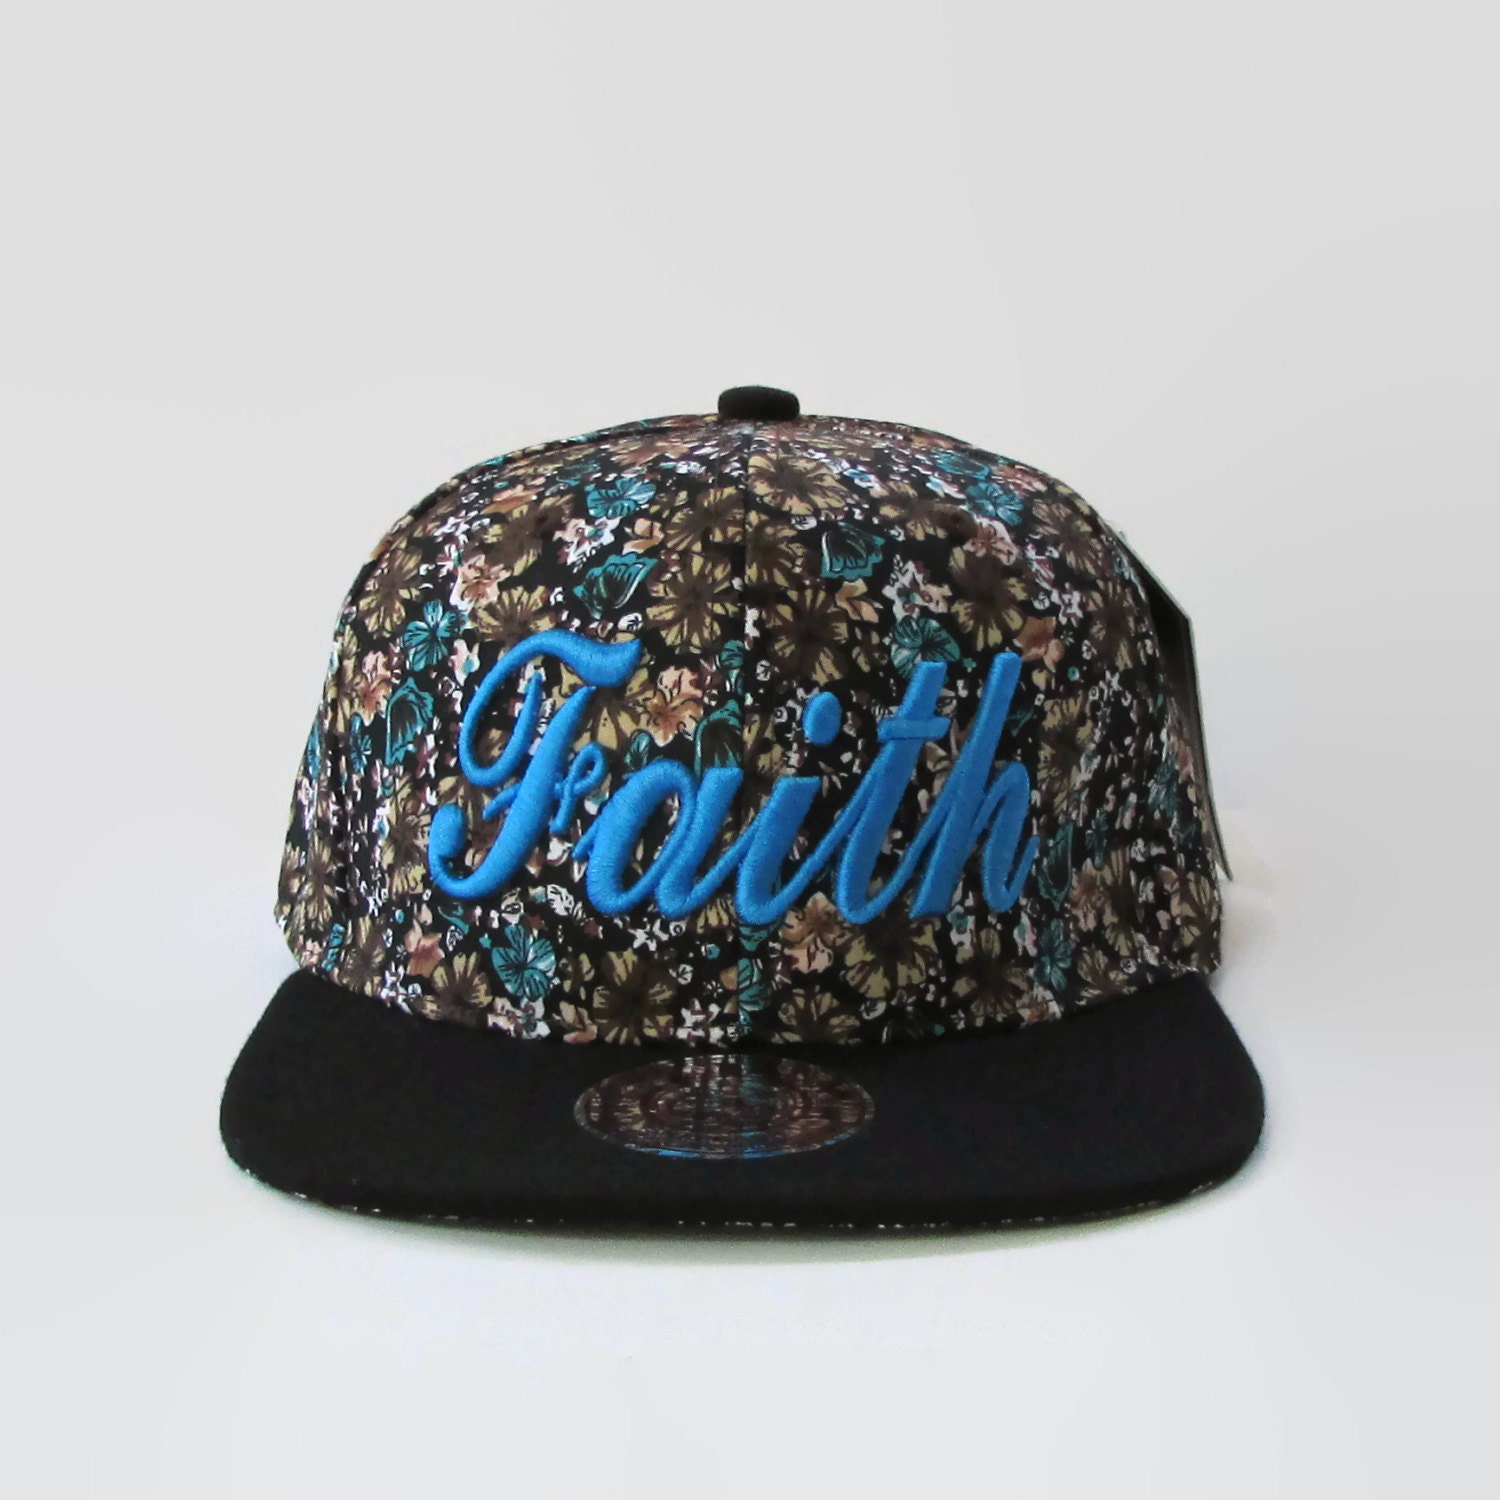 New blue floral print hat custom embroidered faith by maruhats